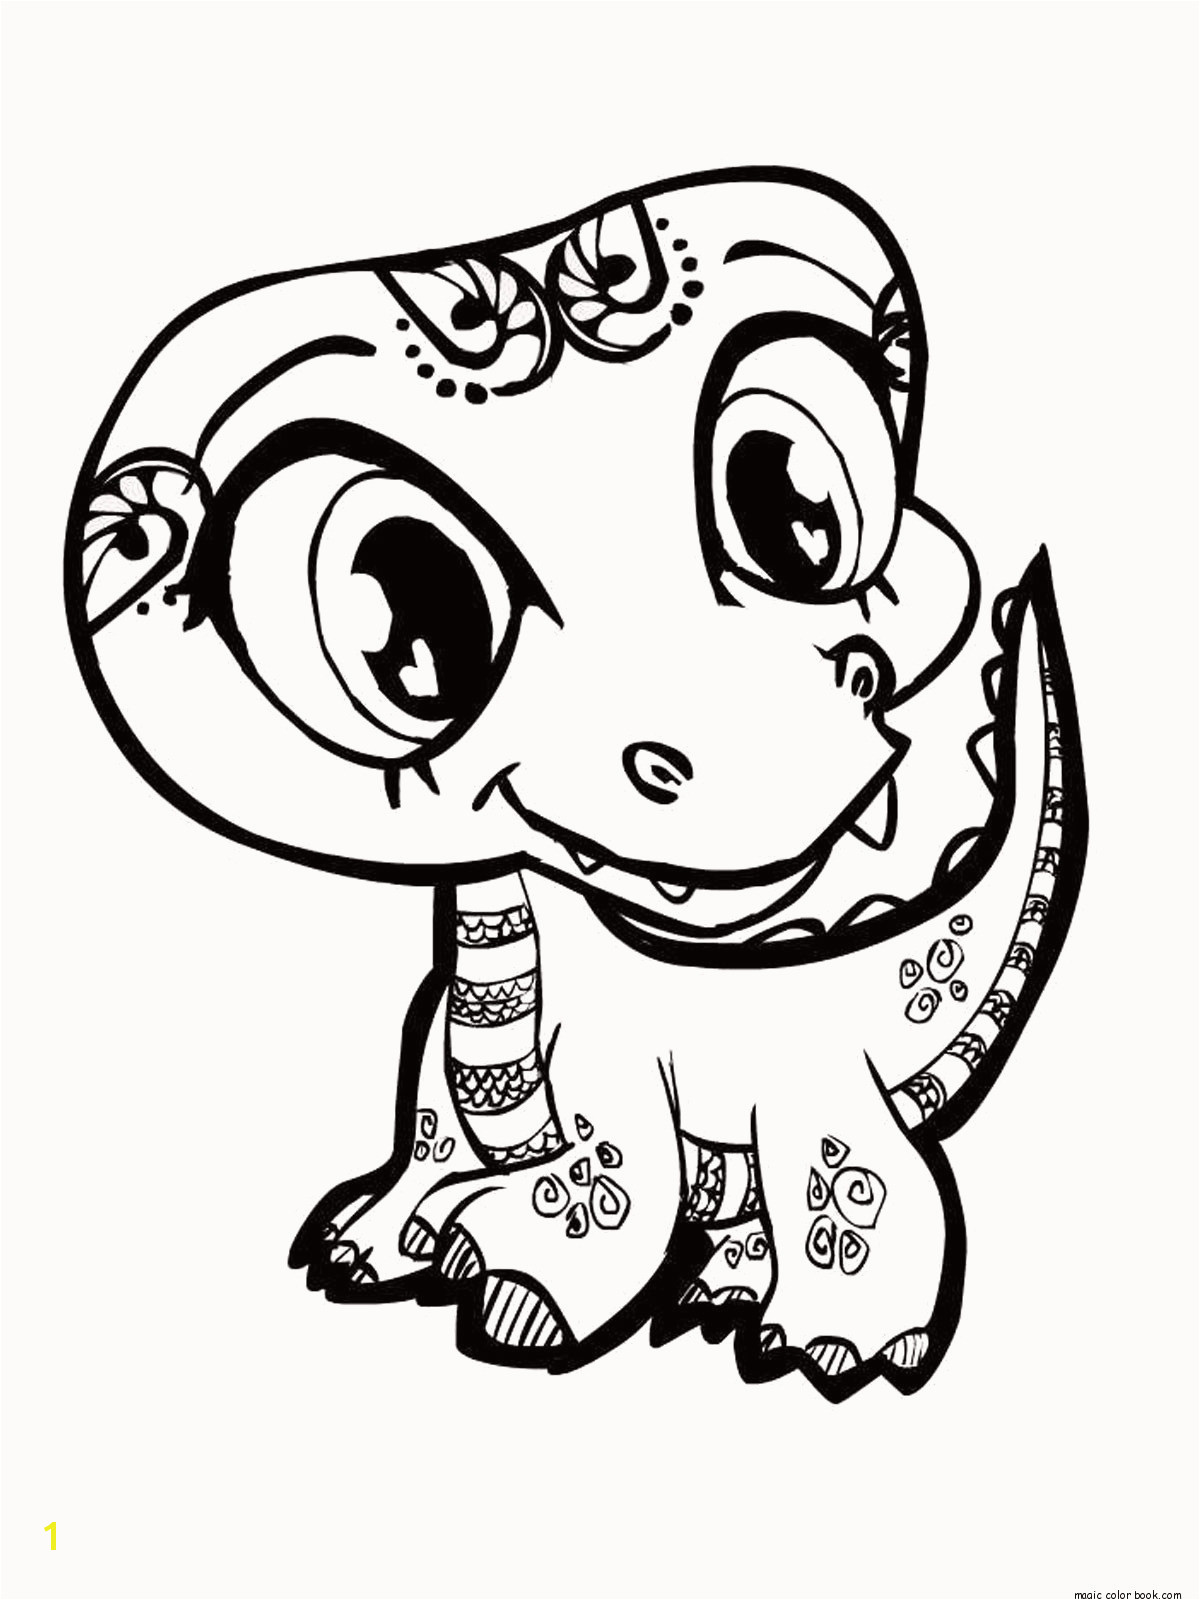 Littlest Petshop Coloring Pages Awesome Littlest Pet Shop Coloring